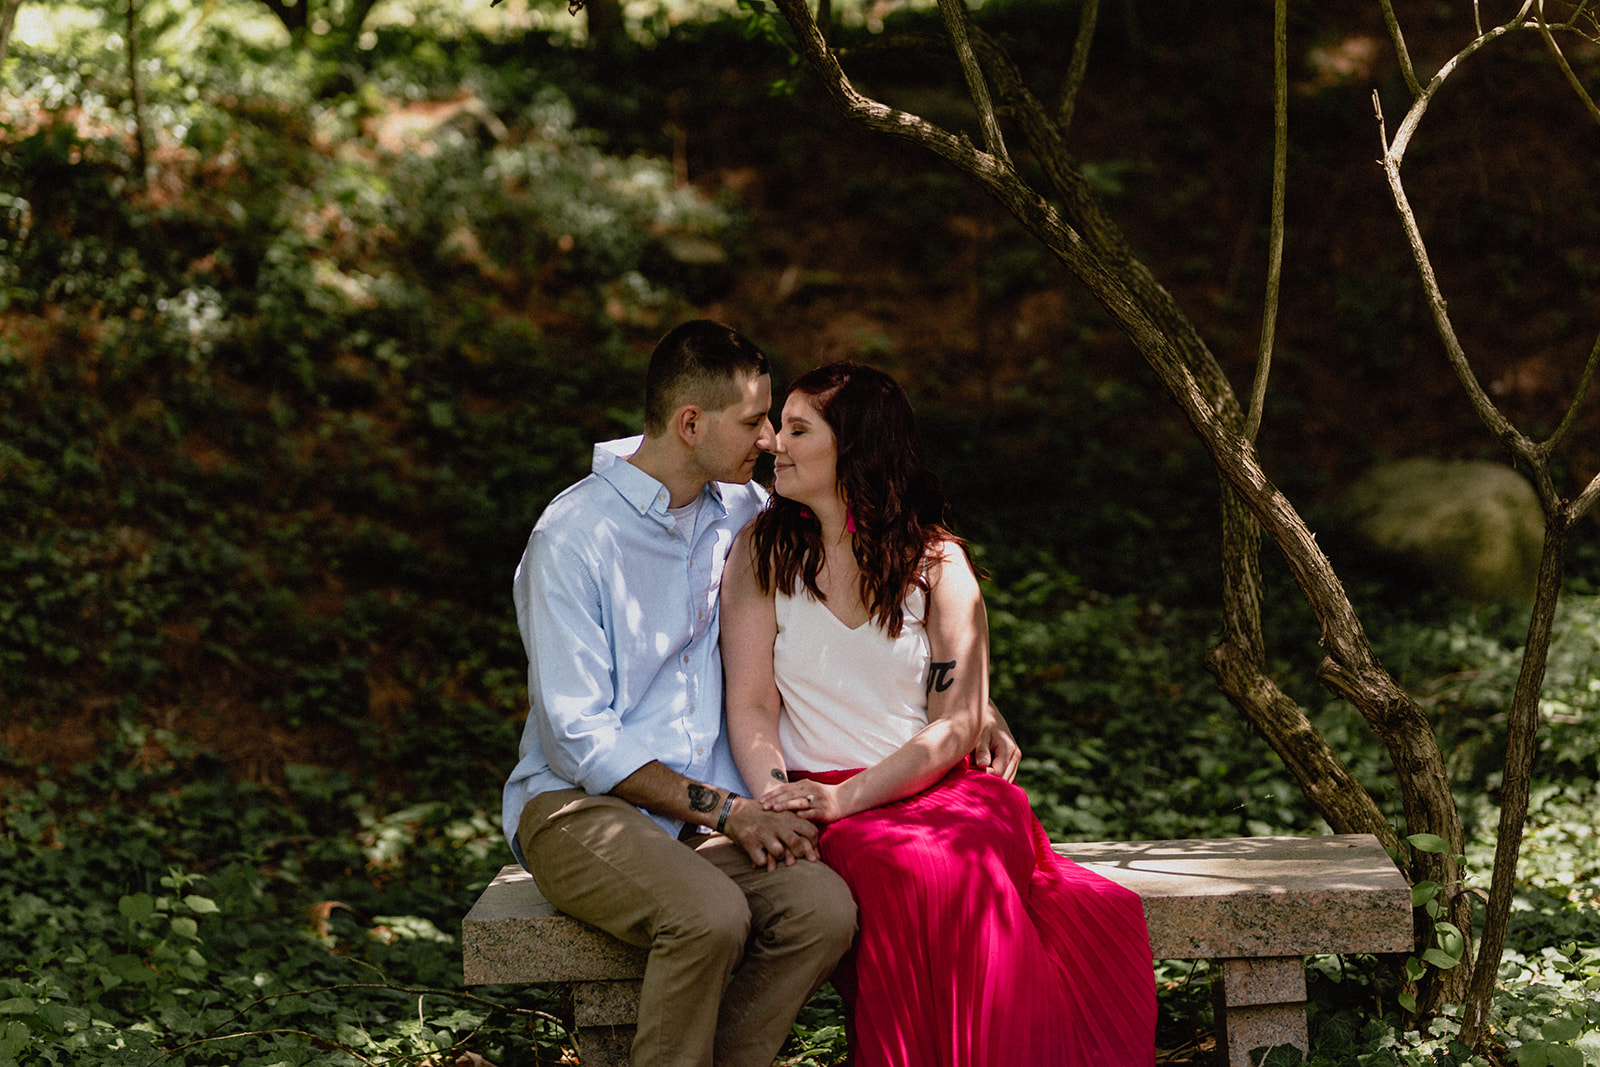 stan hywet engagement session - lana + zach 51